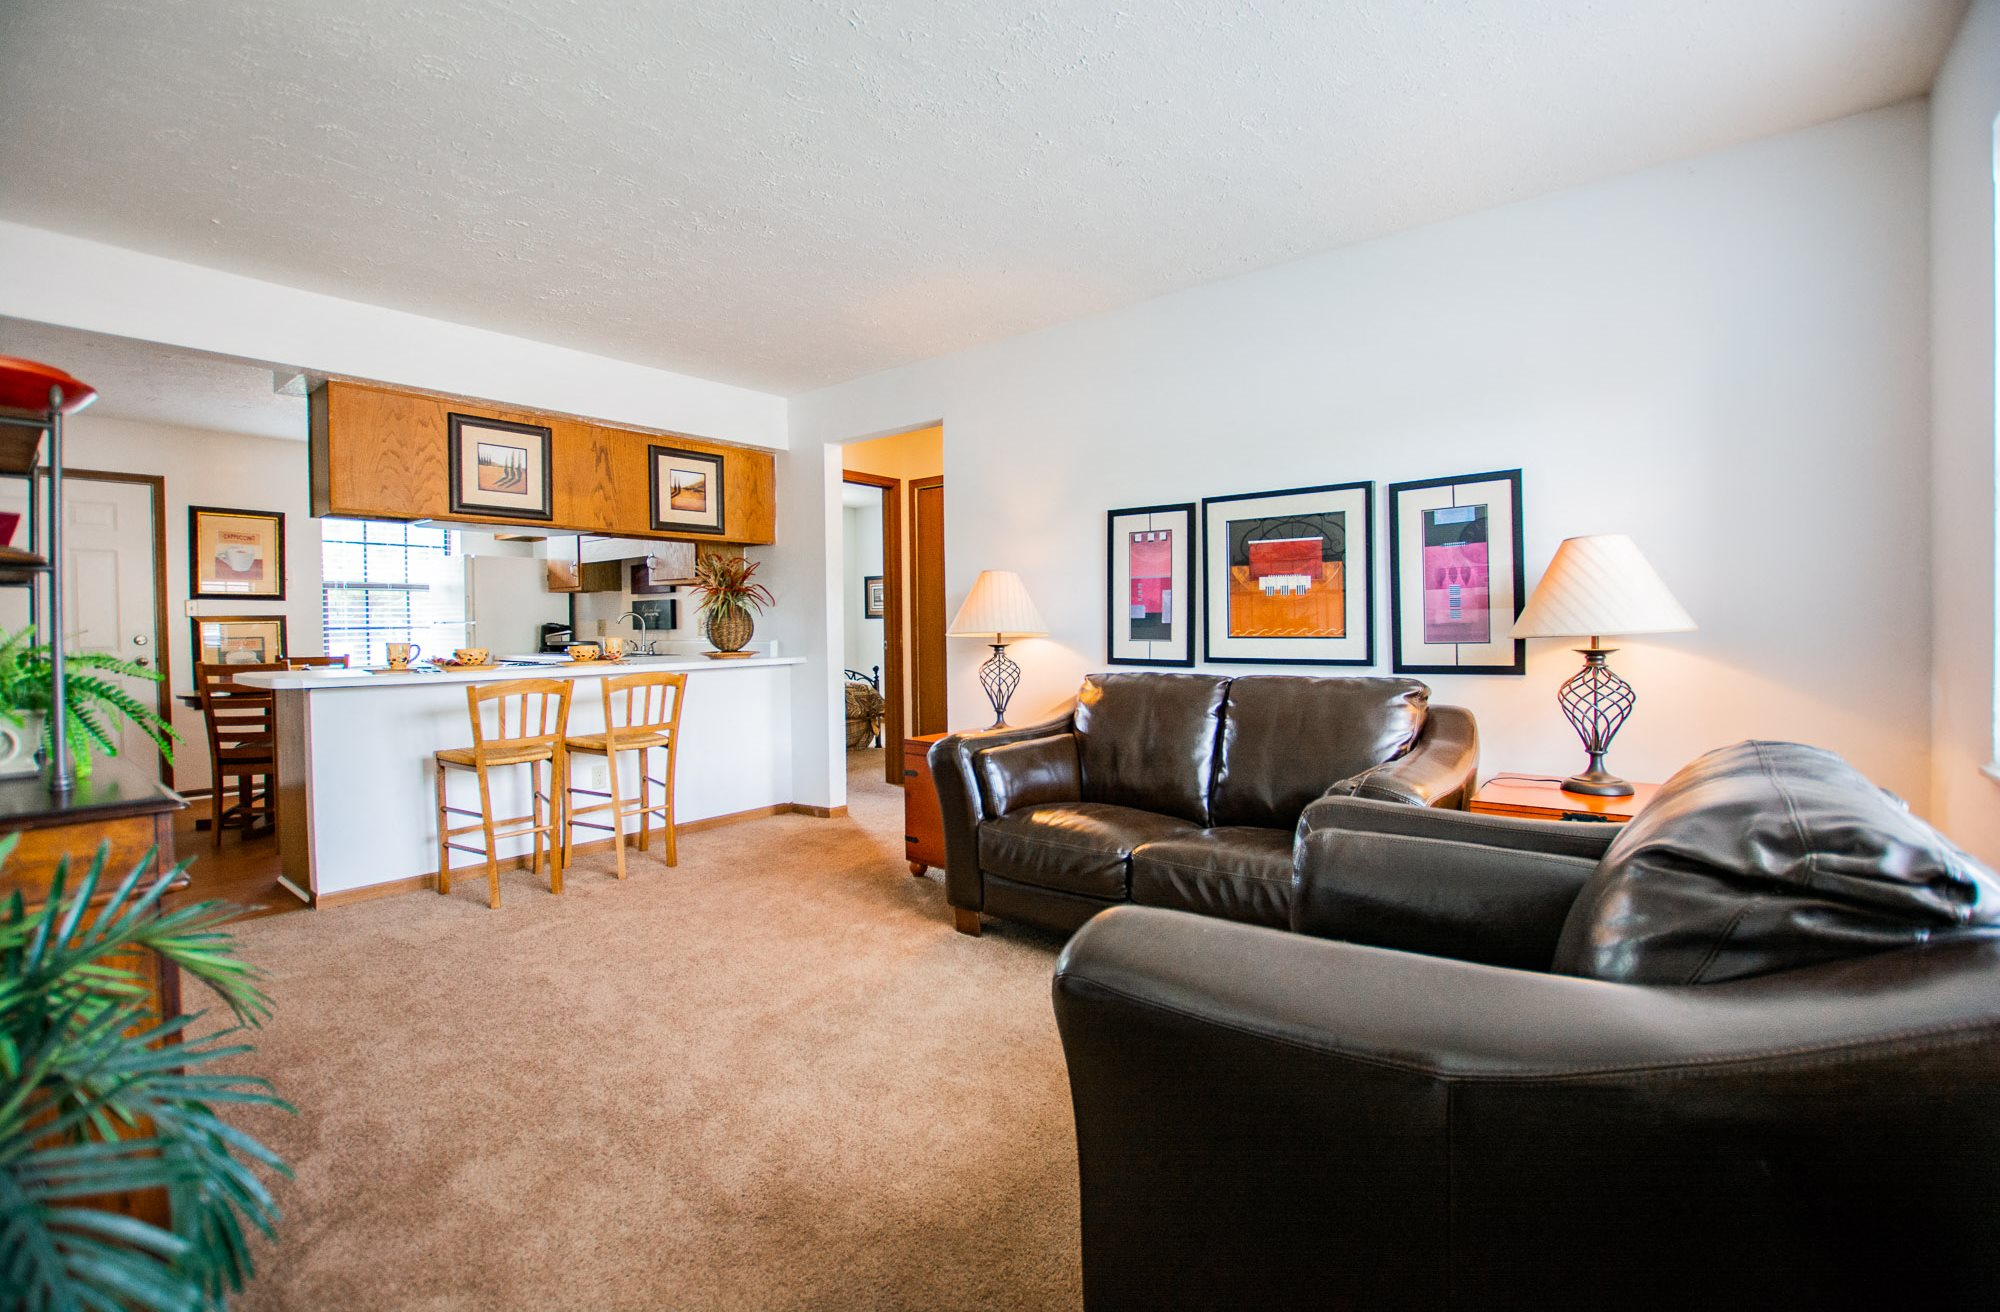 Upgraded Interiors at Sandstone Court Apartments, Greenwood, Indiana